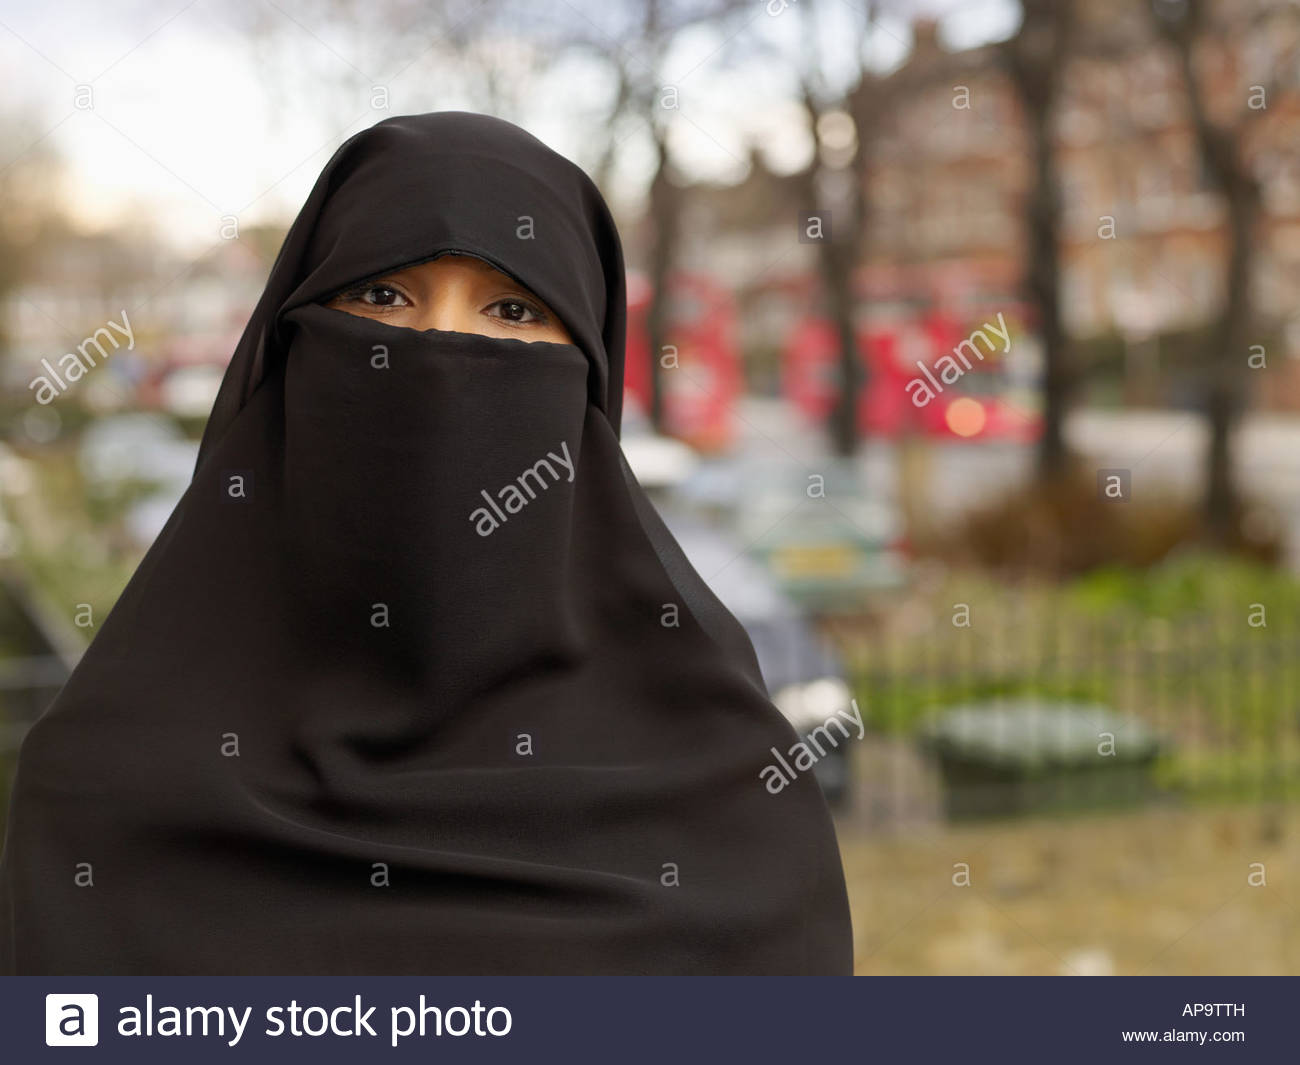 Woman wearing hijab - Stock Image